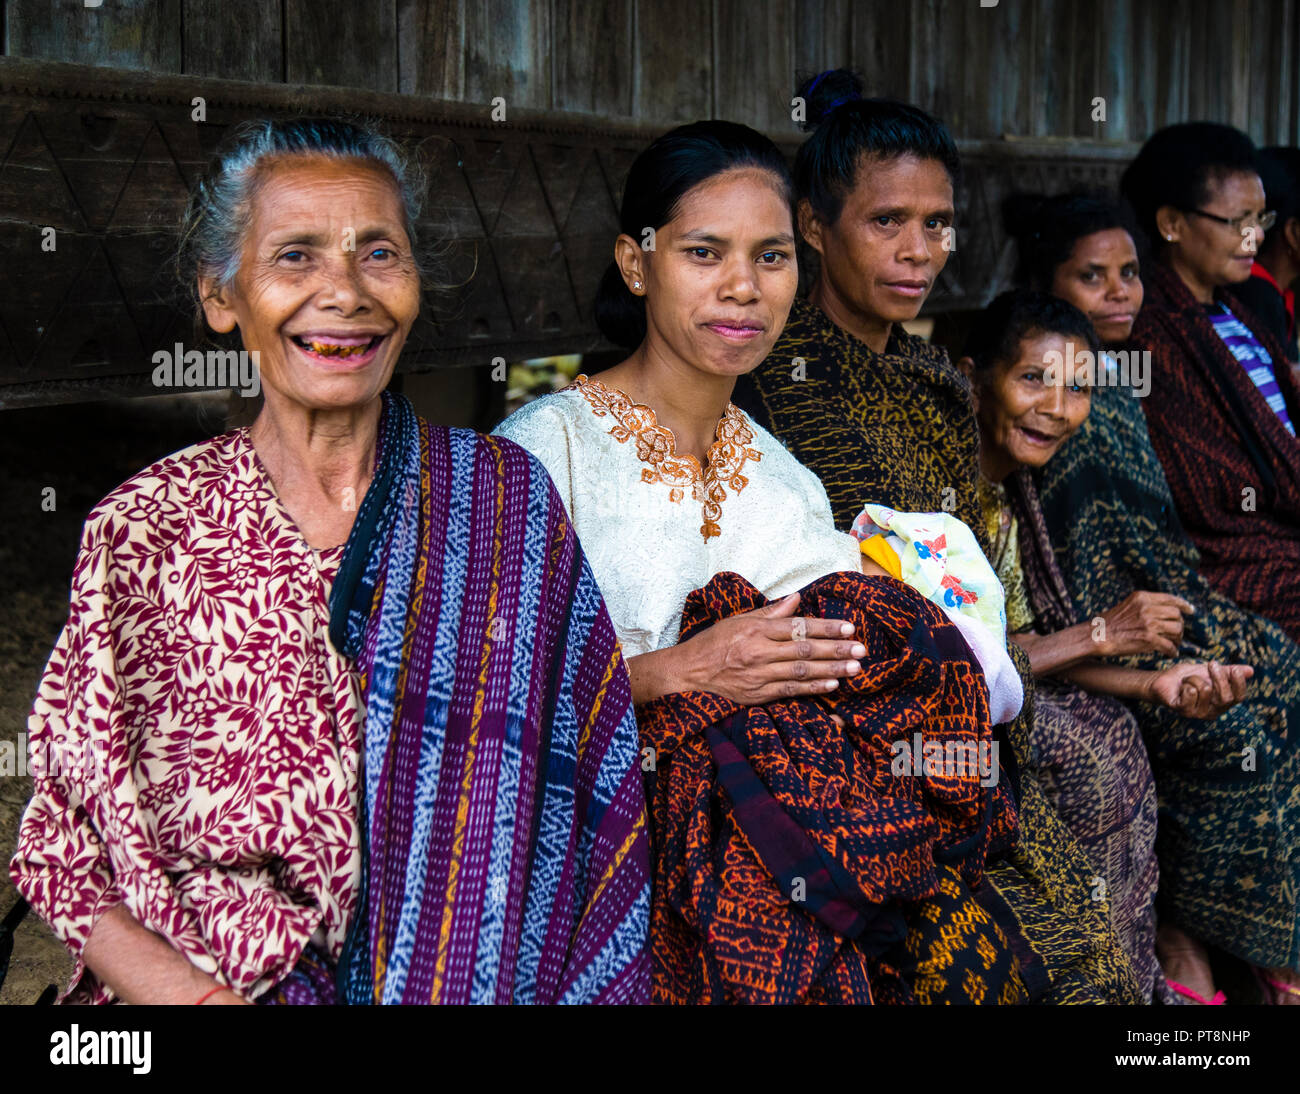 Indonesian People In Traditional Attire Stock Photo Alamy